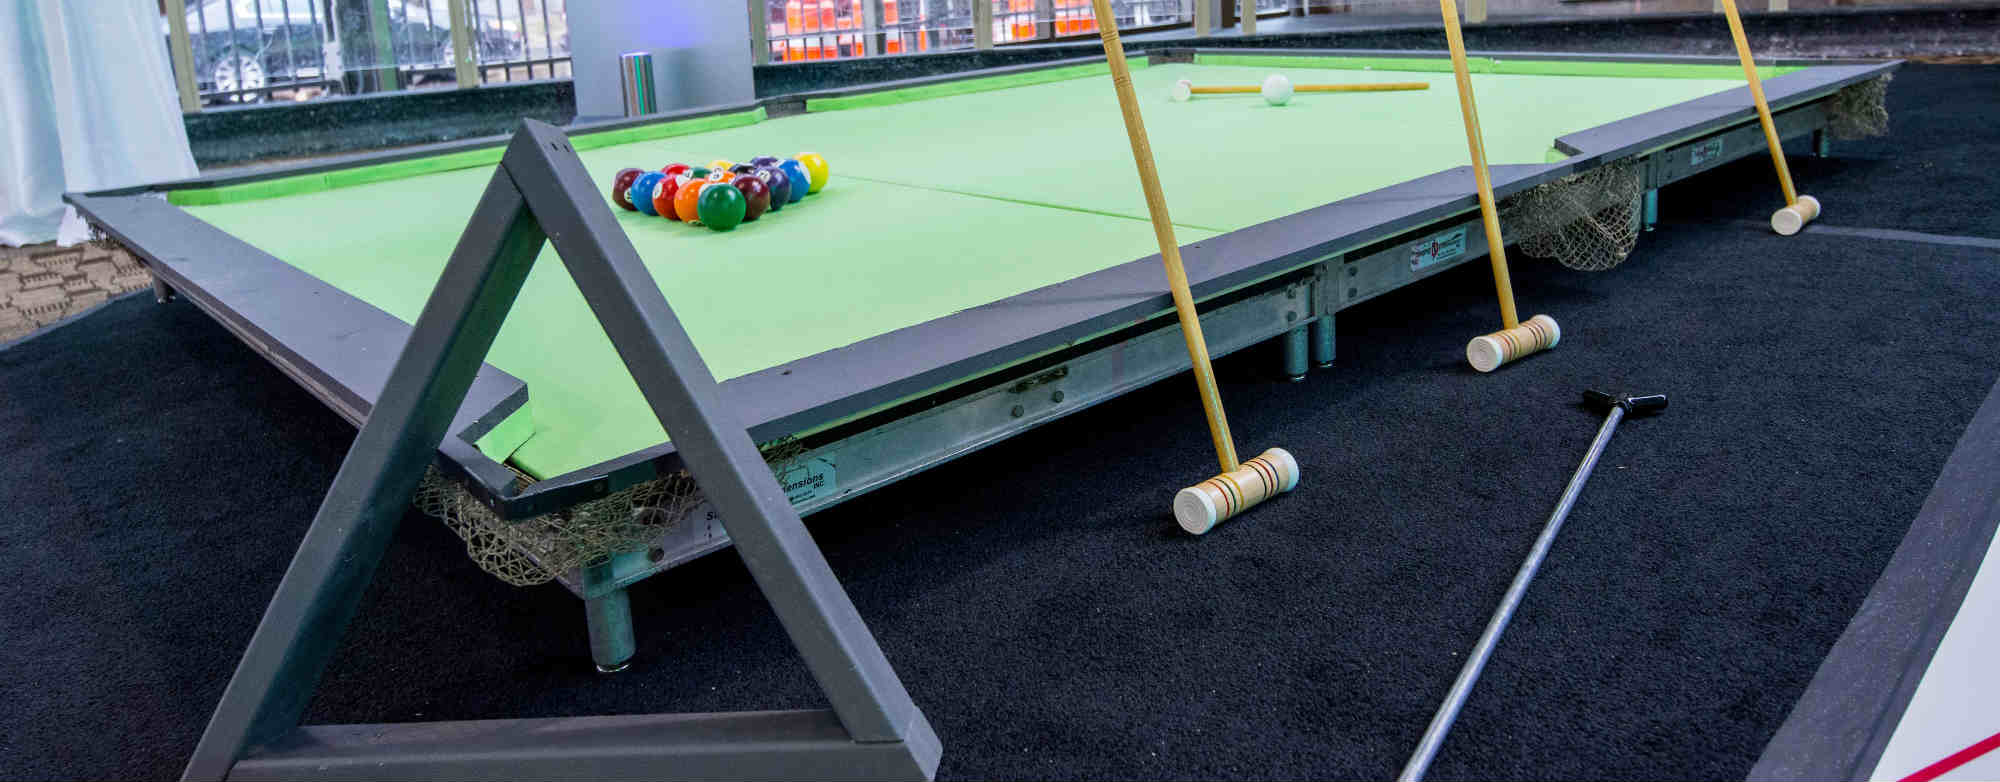 GAMES Archives Page Of Event Lab - Pool table sliders